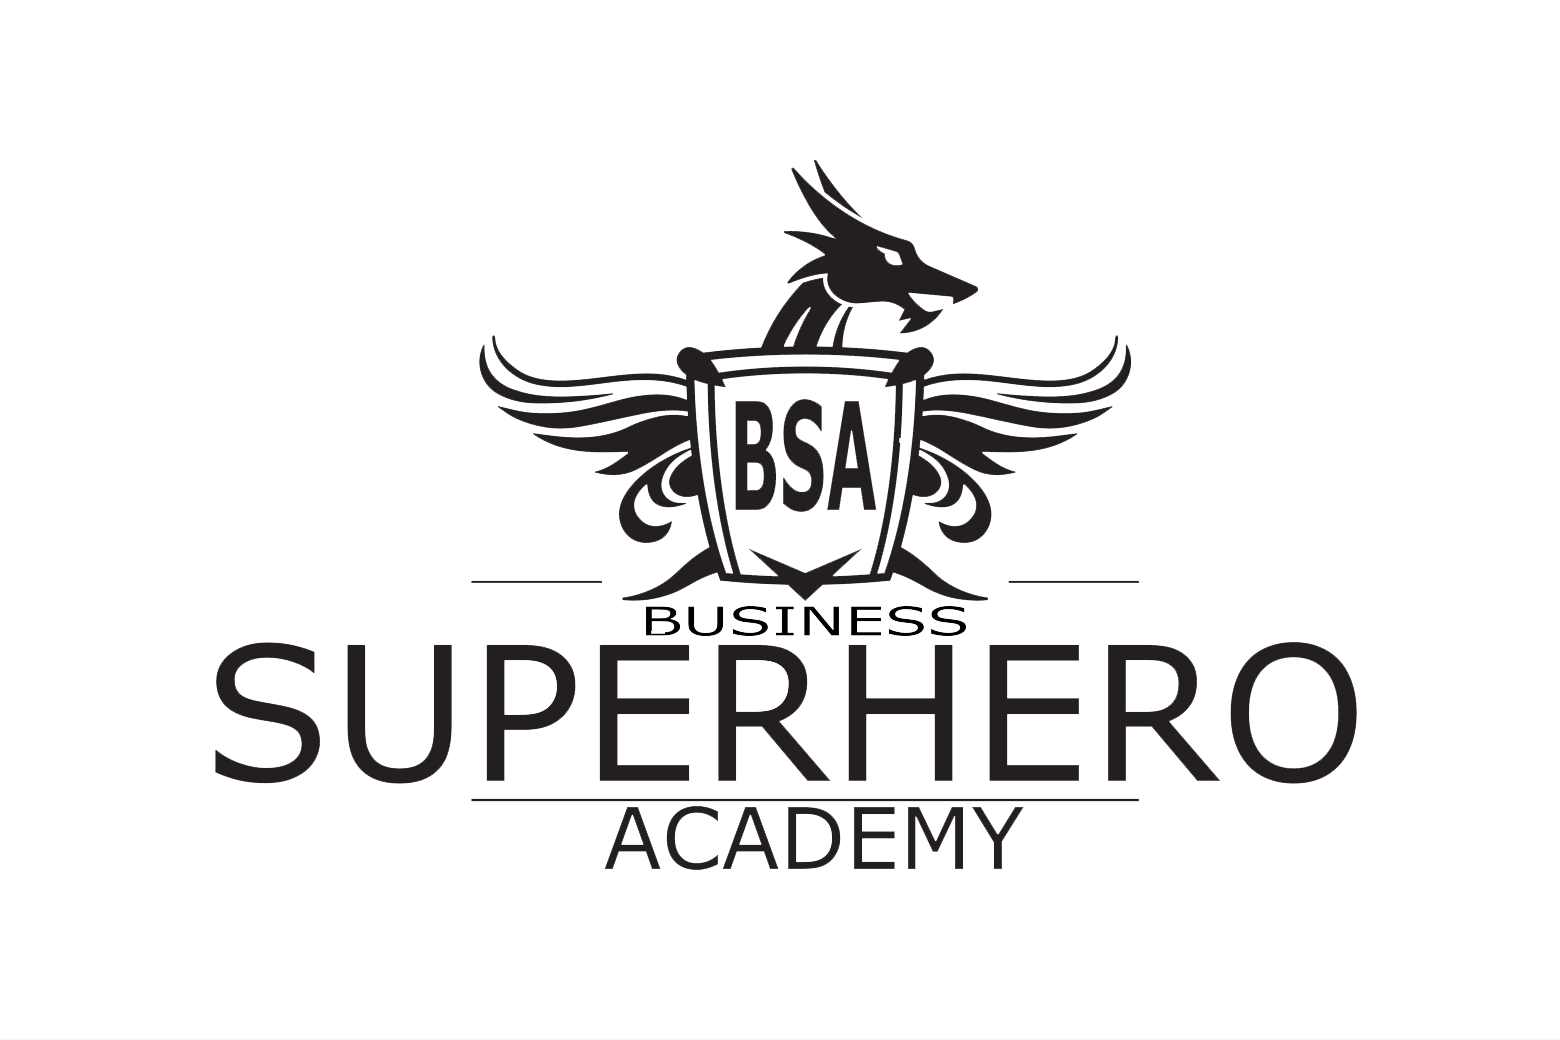 Business Superhero Academy